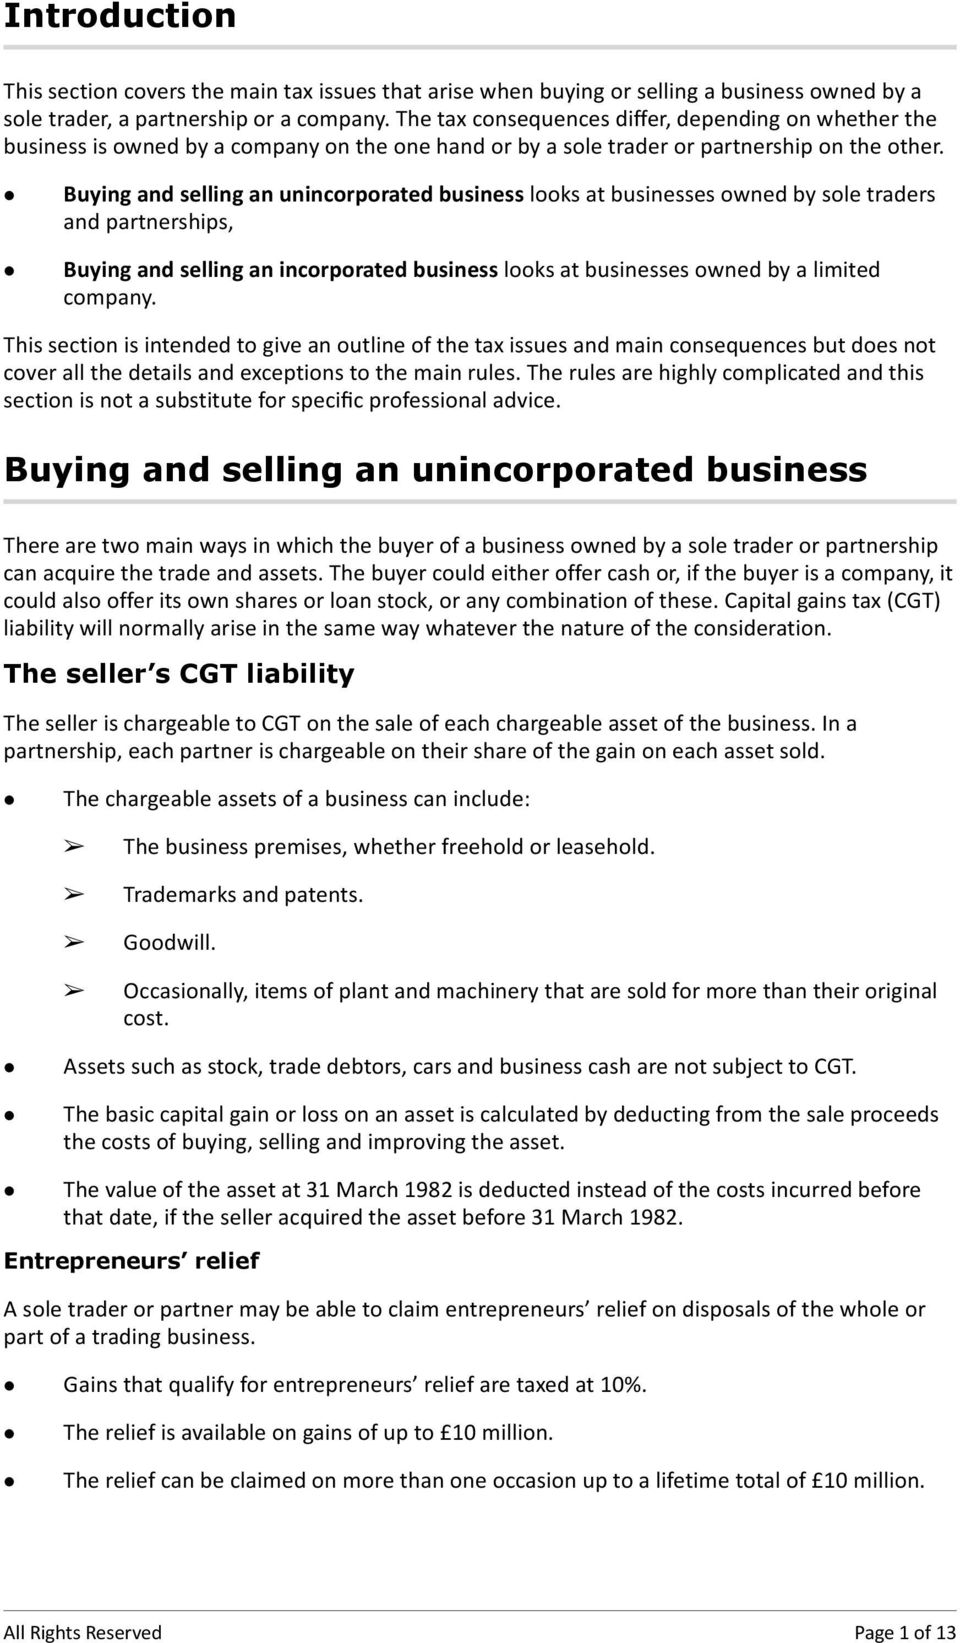 Buying and selling an unincorporated business looks at businesses owned by sole traders and partnerships, Buying and selling an incorporated business looks at businesses owned by a limited company.